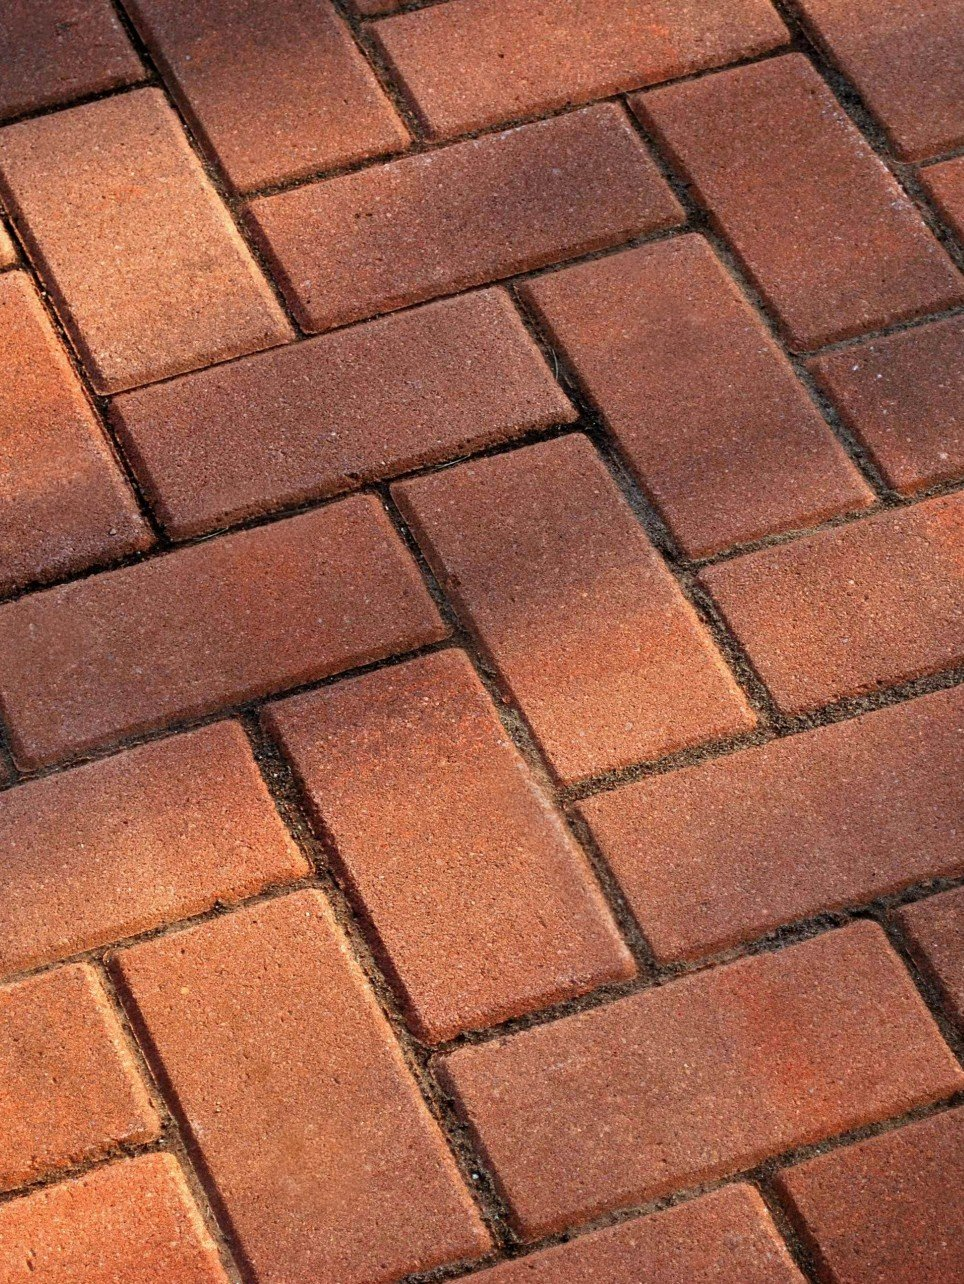 Block Paving Companies Pershaw